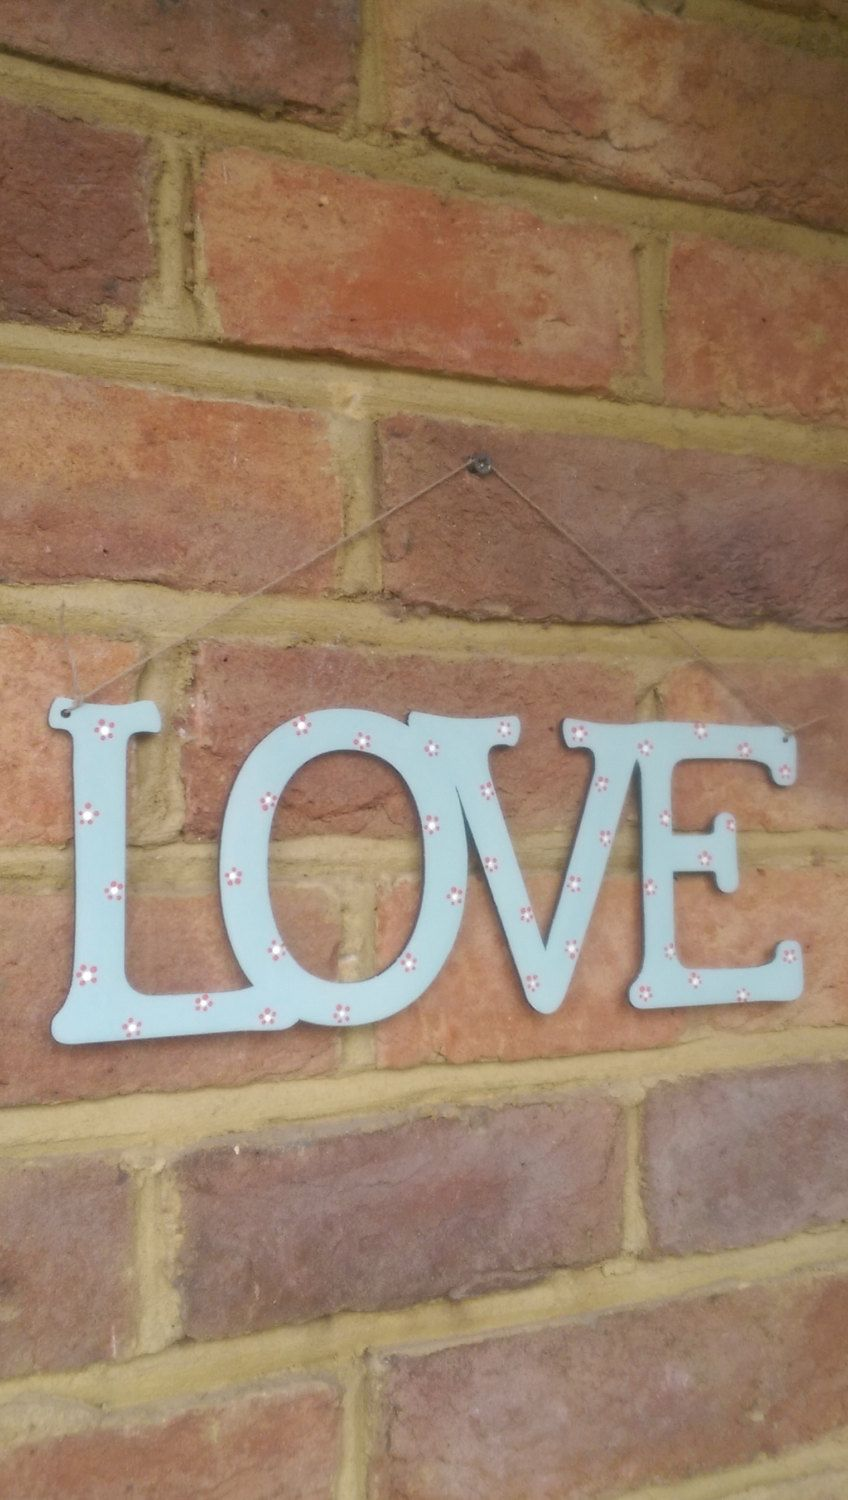 Wedding Gift Painted Wooden Love Sign Wooden Home Decor Wedding Present Anniversary Gift Birthday Gift Handmade In England Uk Wood Interior Design Wood Home Decor Home Decor